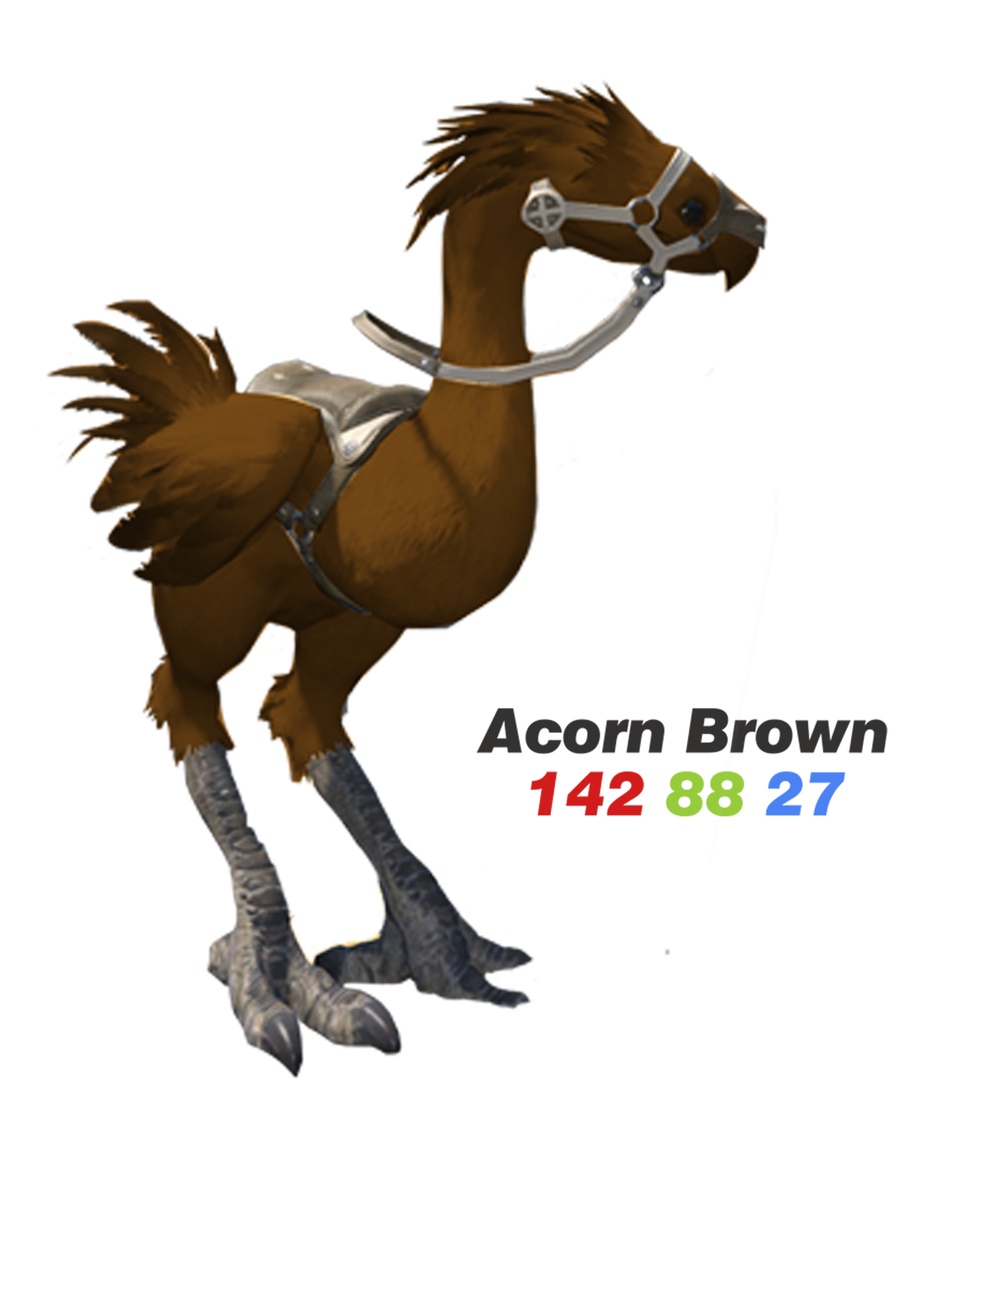 AcornBrown.png